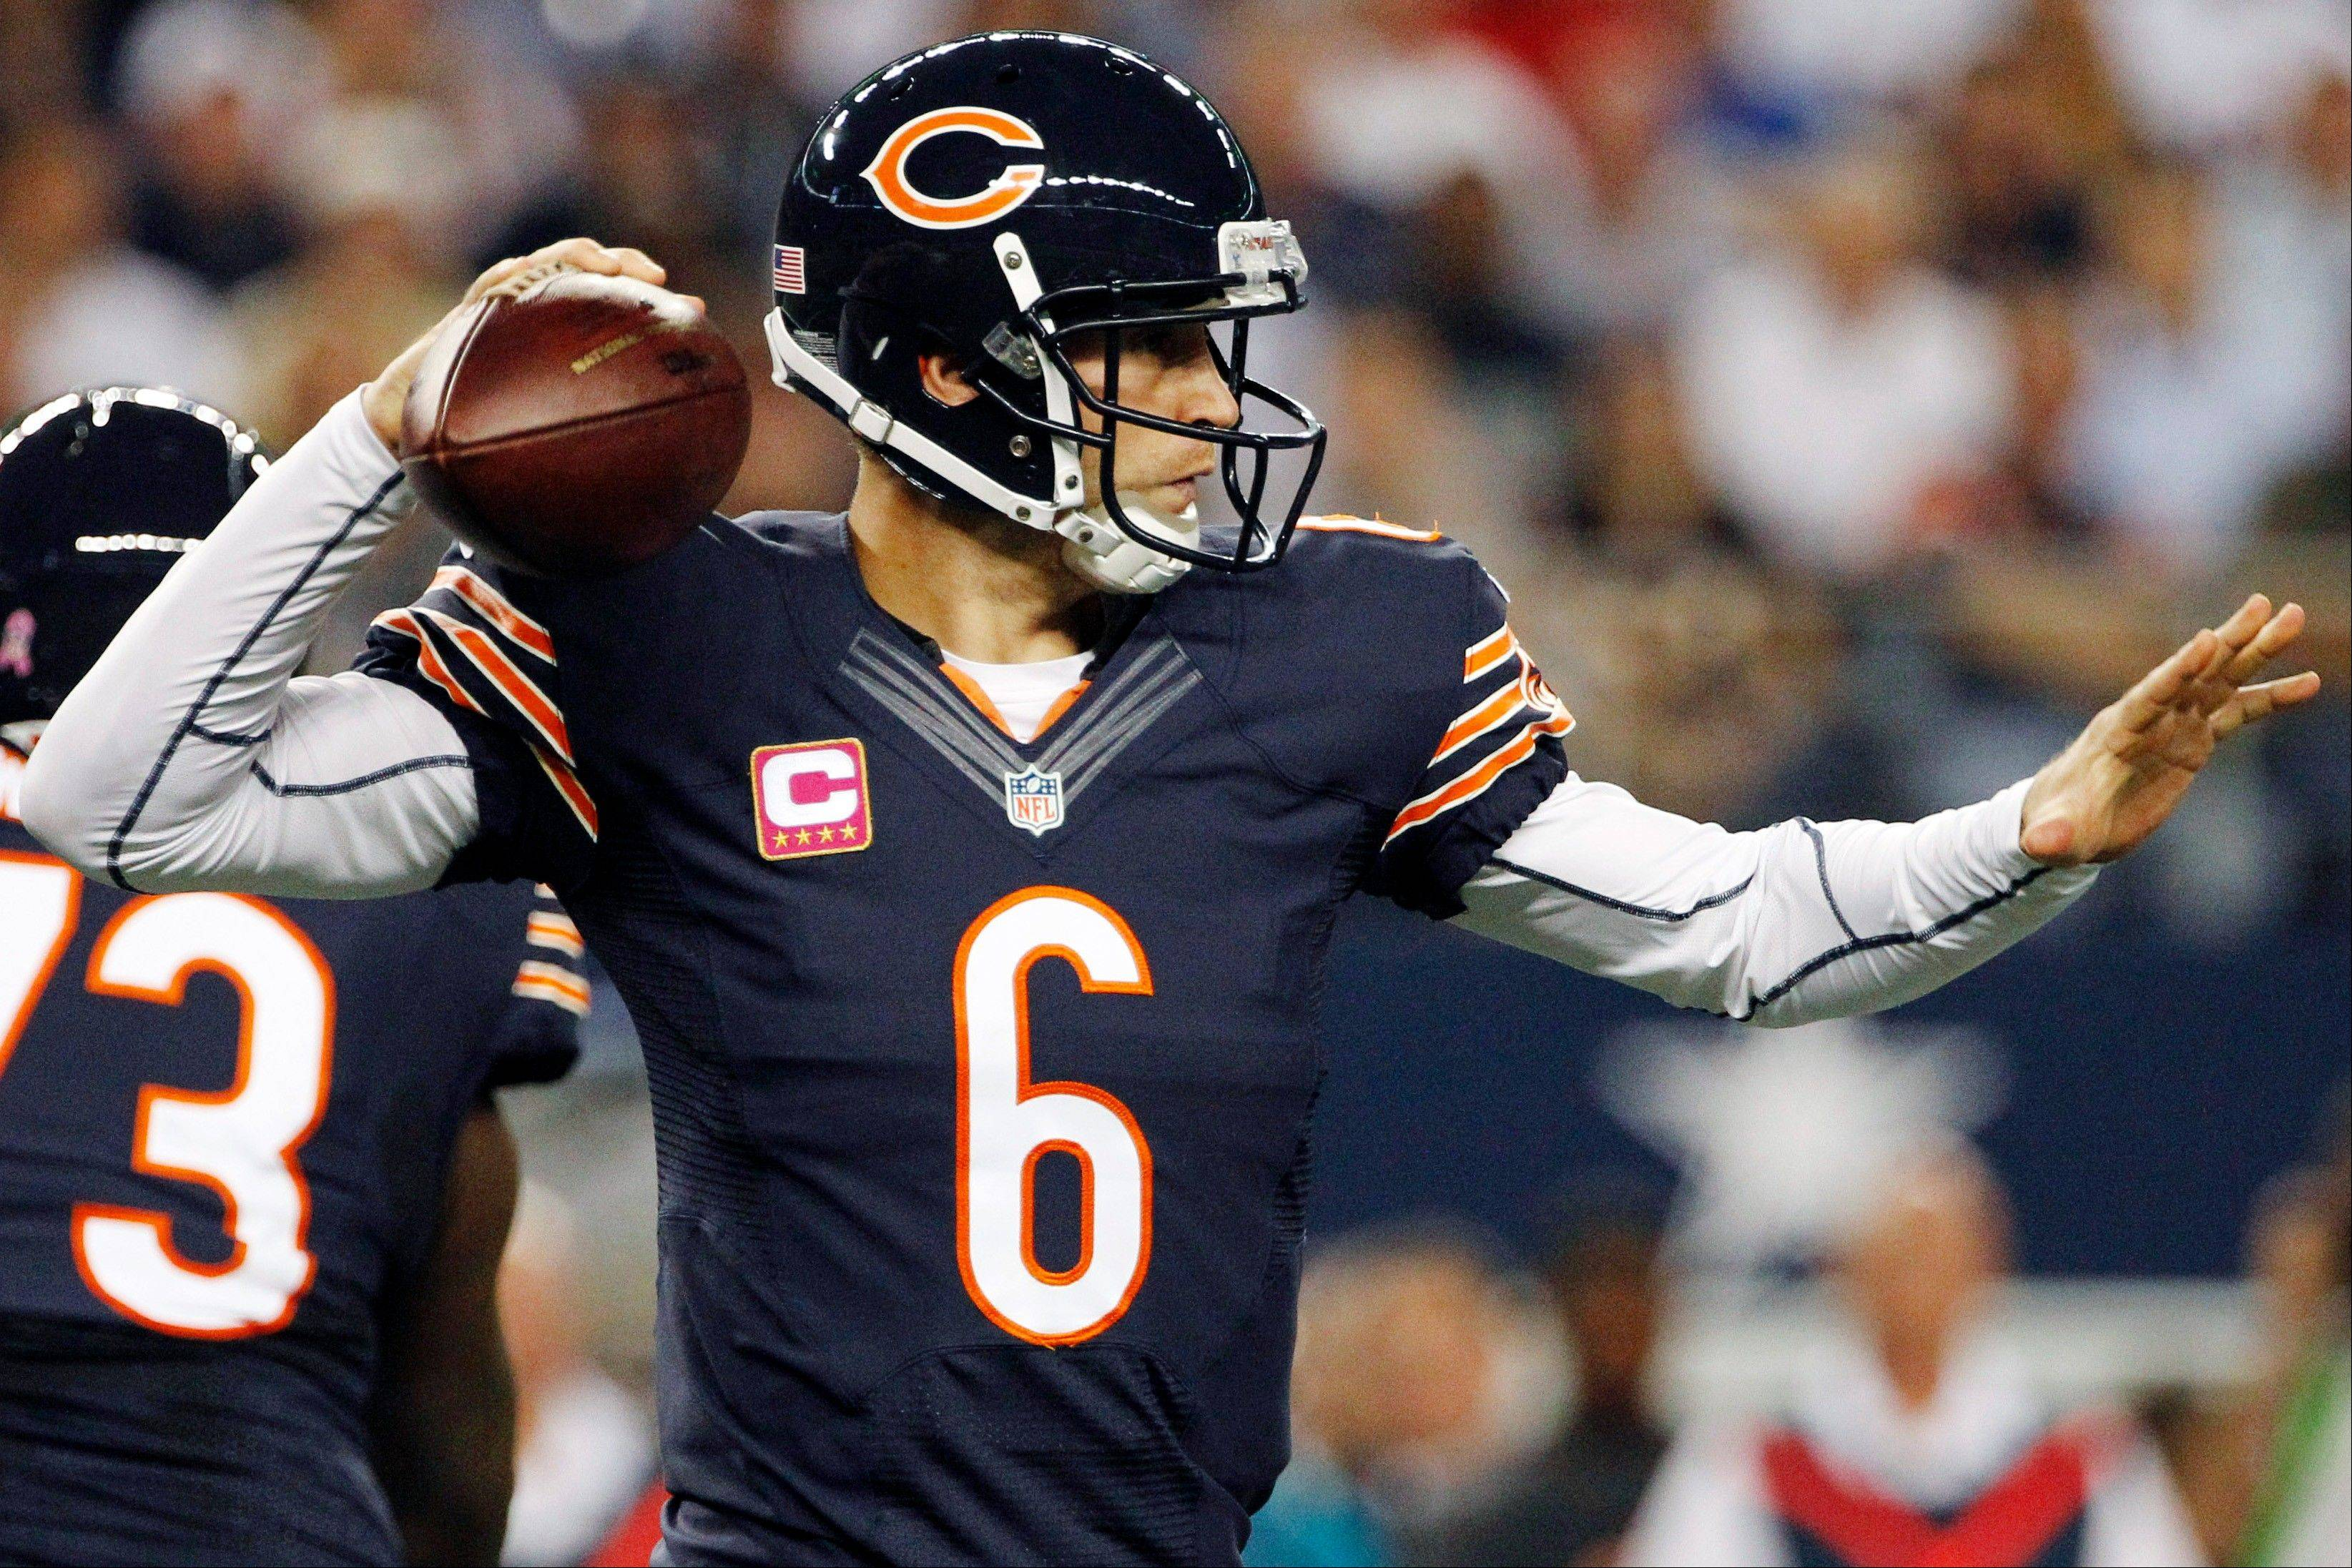 Chicago Bears quarterback Jay Cutler passes the ball.